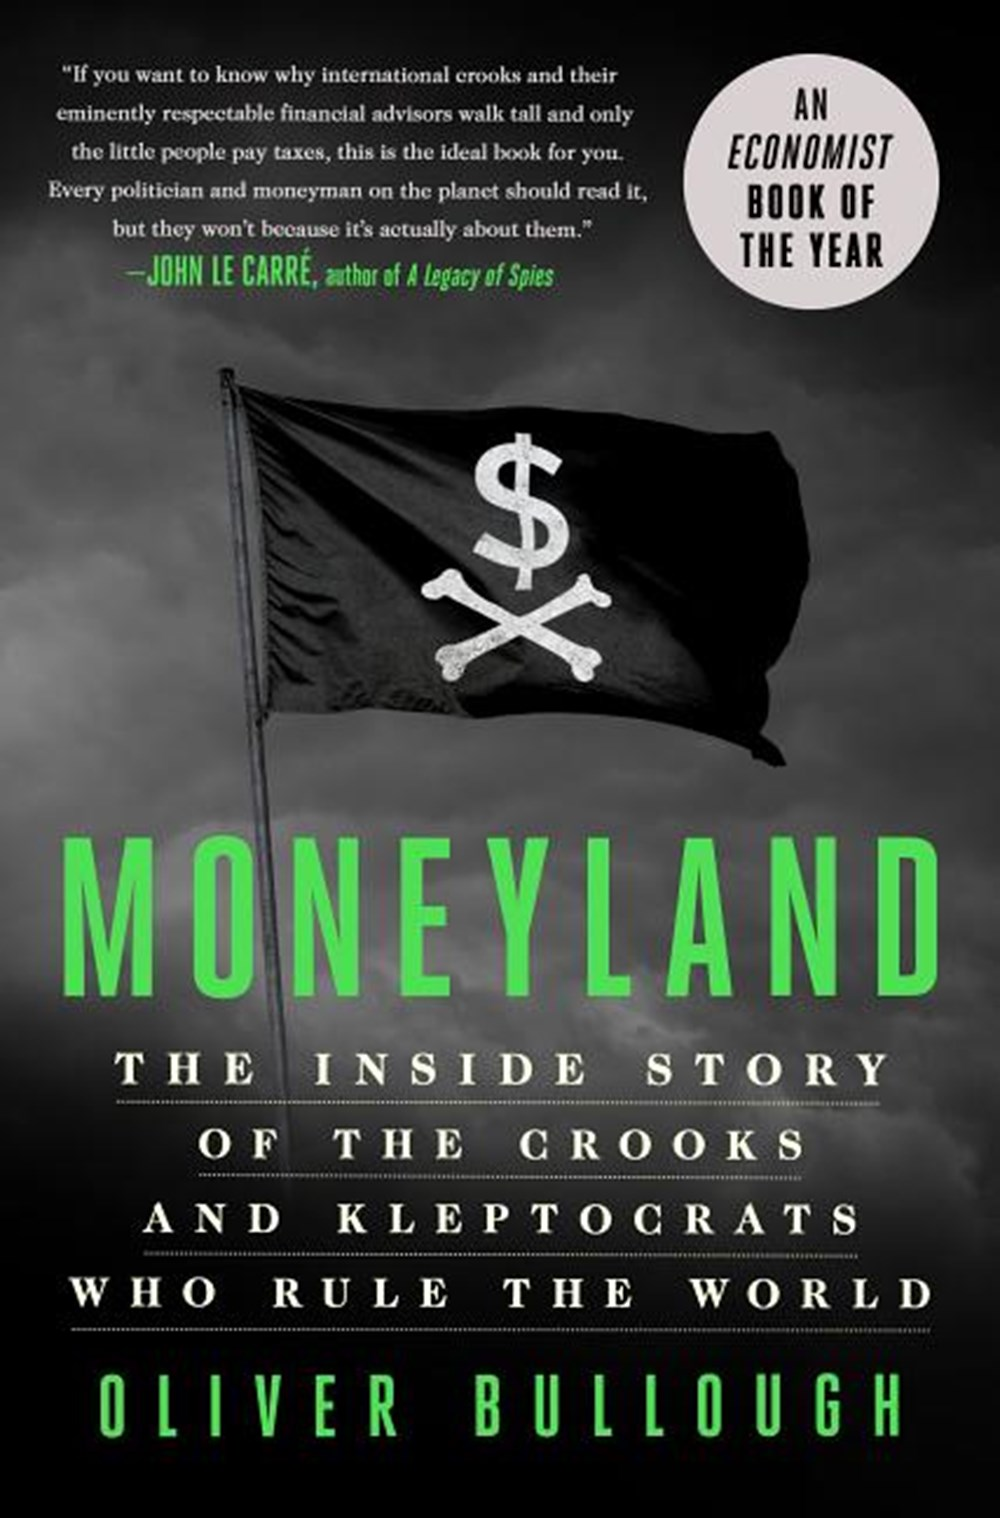 Moneyland The Inside Story of the Crooks and Kleptocrats Who Rule the World